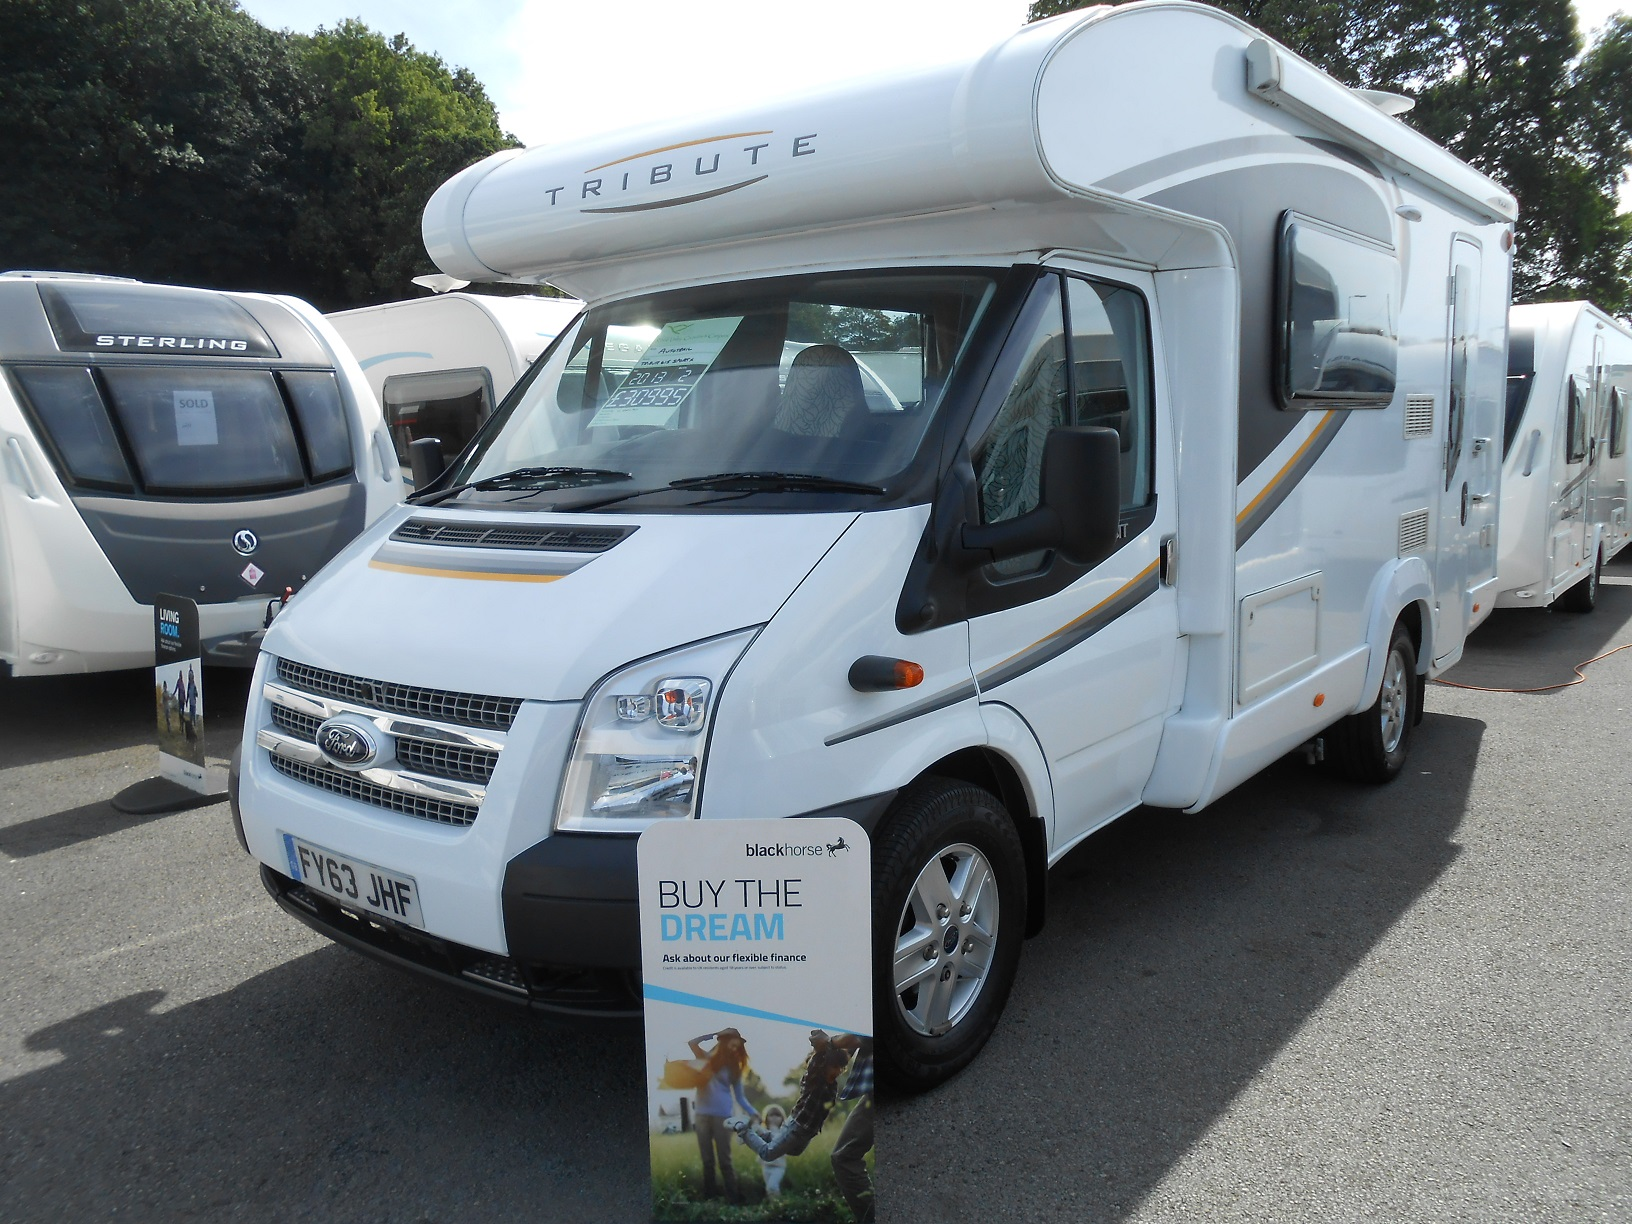 SPECIAL OFFER PRICE JUST £30995 FOR THIS 63 2013 AUTOTRAIL TRIBUTE T615 SPORT X LOW PROFILE 2 BERTH MOTORHOME IN OUTSTANDING CONDITION. The layout includes captains chairs at the front, full size bench seats which assemble into a double bed or 2 adult size single beds. Corner bathroom with cassette toilet, separate shower and hand wash basin. At the rear of the vehicle is a spacious kitchen fitted with integrated appliances including a microwave and omnivent. The Sport X Pack includes: Alloy wheels Awning Tv aerial Omnivent Cruise control Air con Reverse camera BBQ point. This Motorhome will come on the road including 12 months warranty at the advertised price. Flexible finance packages are available subject to status. Please call 07742972828 for more details. Open 7 days a week.